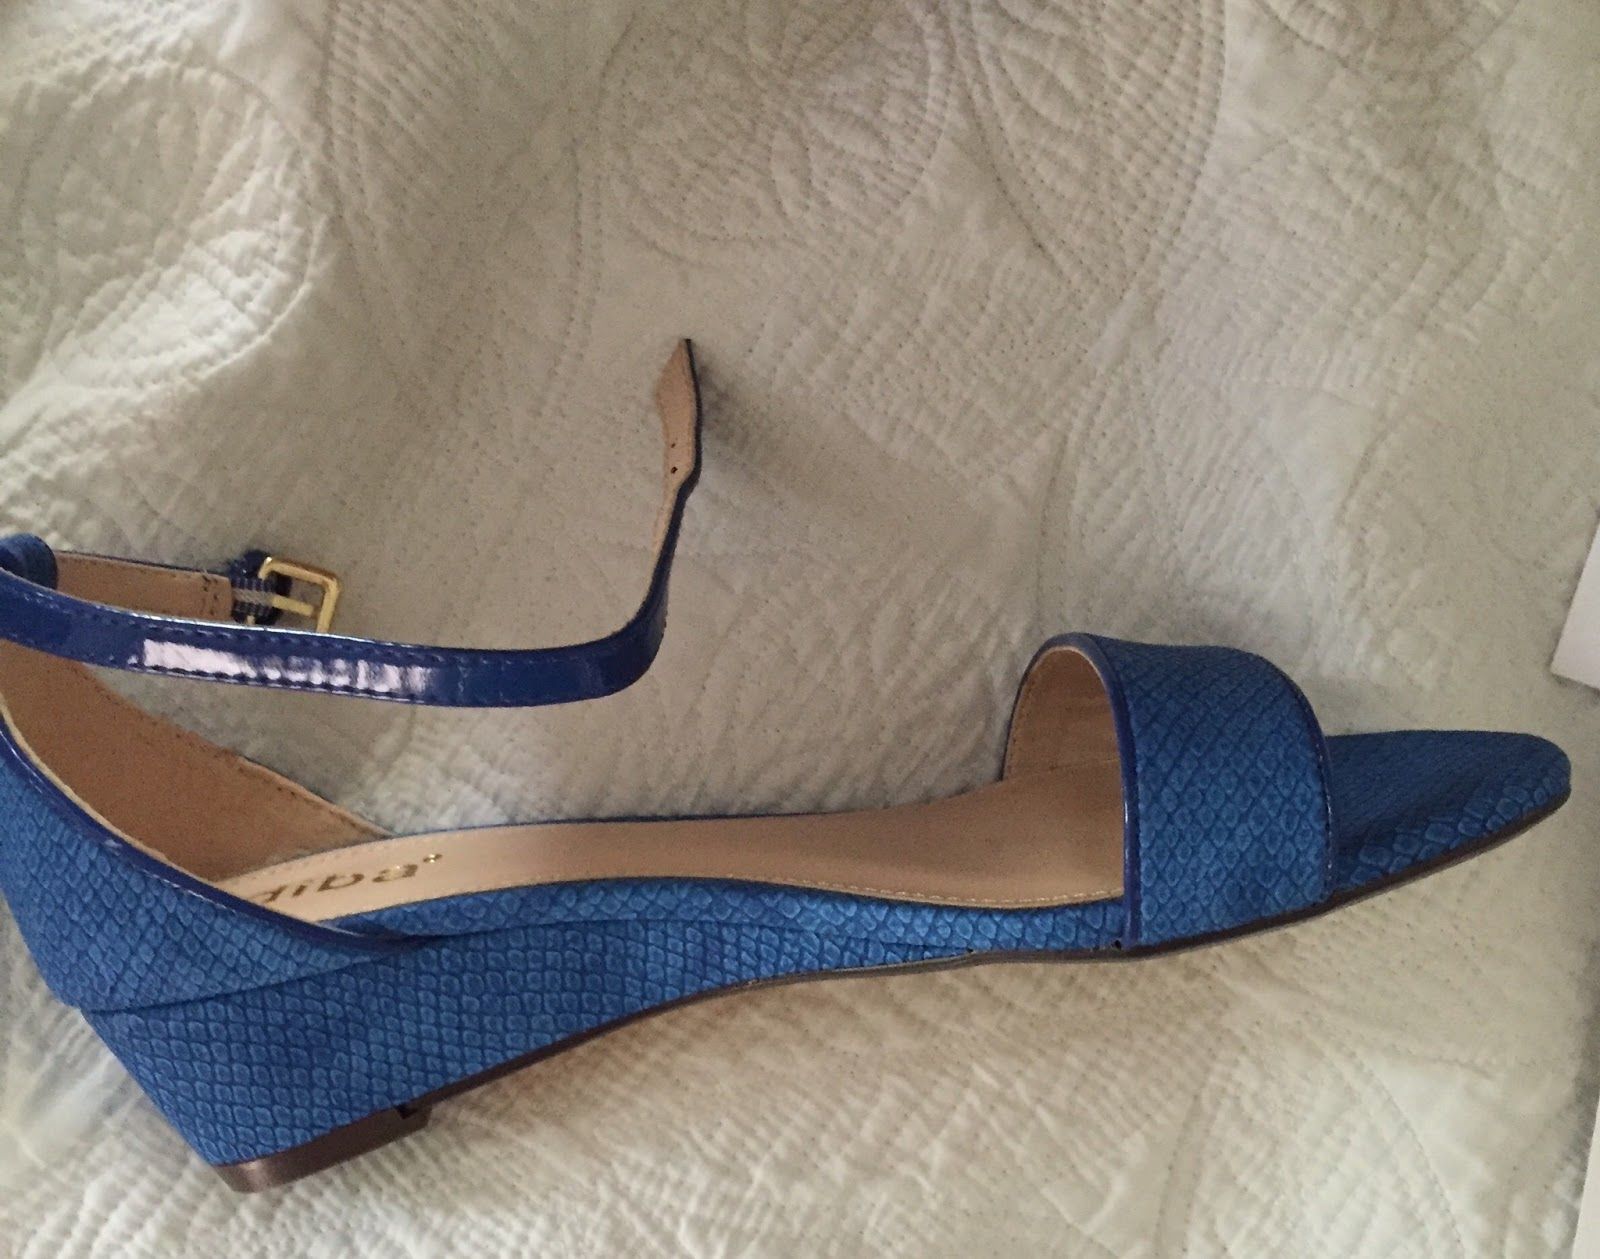 83bb0413f827 The fit was good, the price was okay and I am a sucker for a pair of blue  snakeskin wedges, so they were also a keeper.